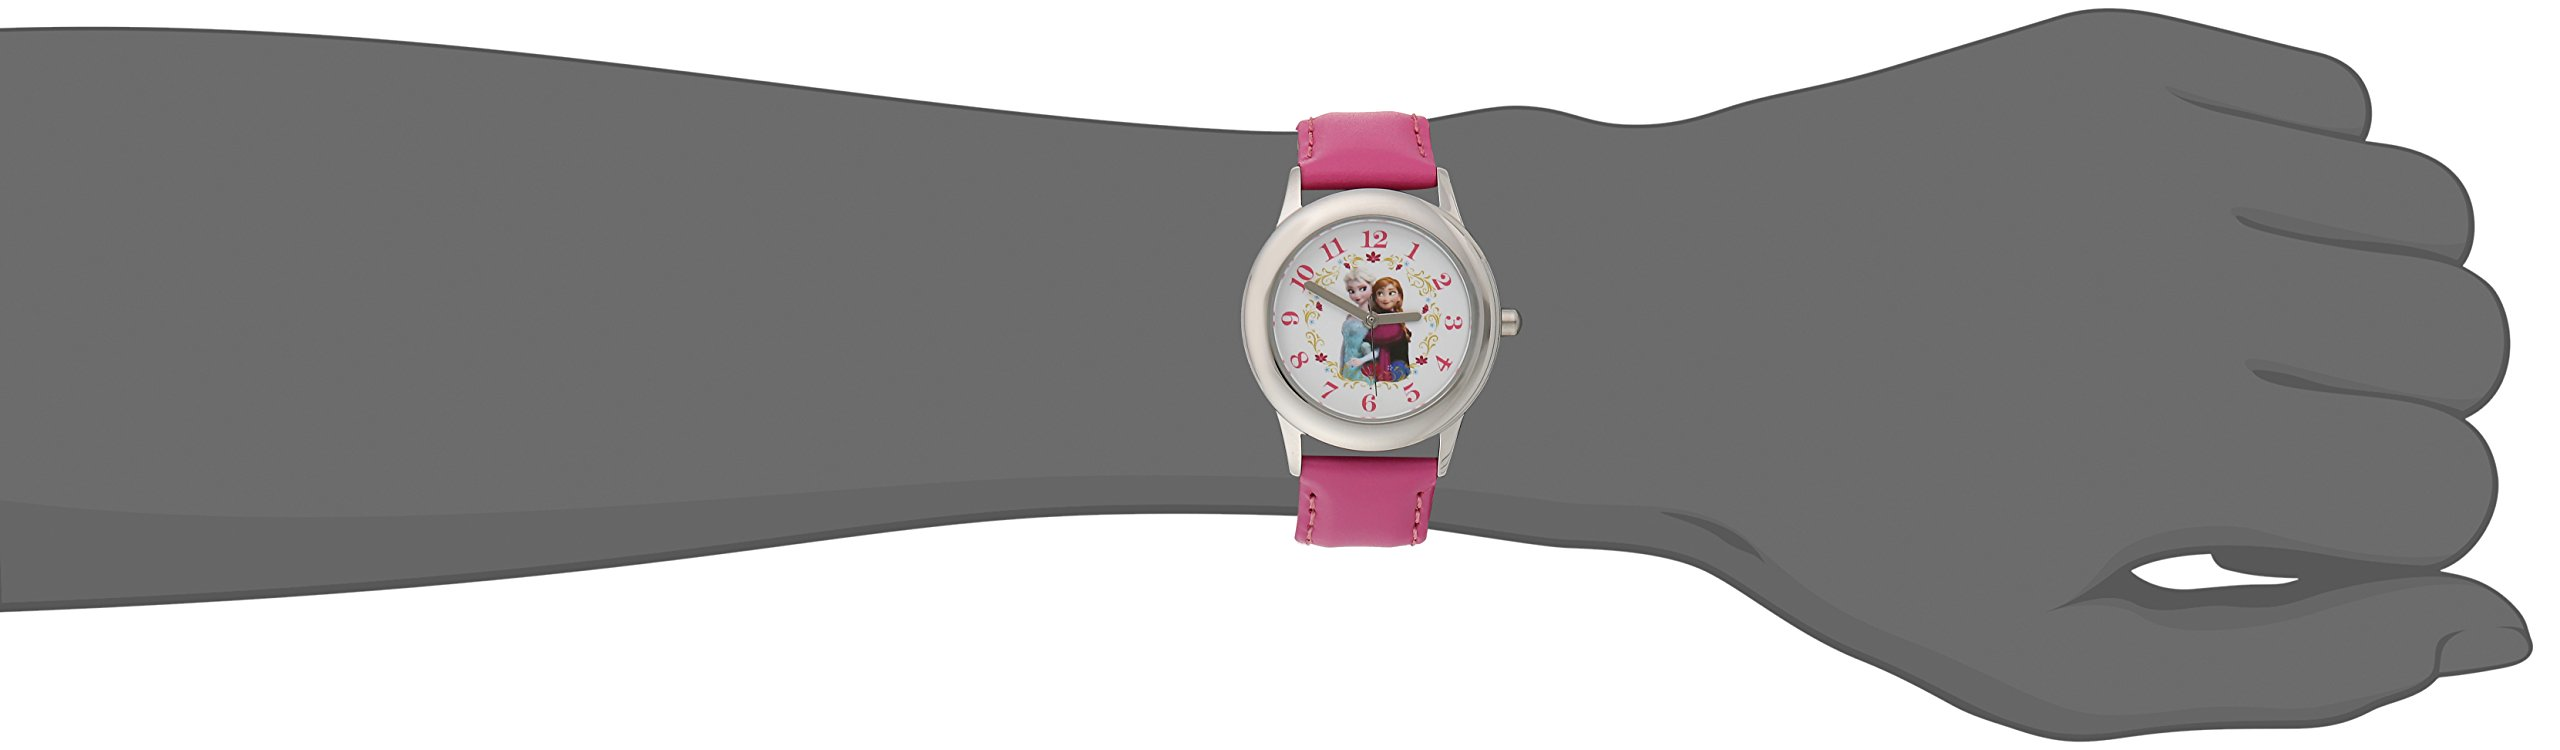 Disney Kids' W001793 ''Frozen Elsa and Anna'' Stainless Steel Watch with Pink Leather Band by Disney (Image #2)